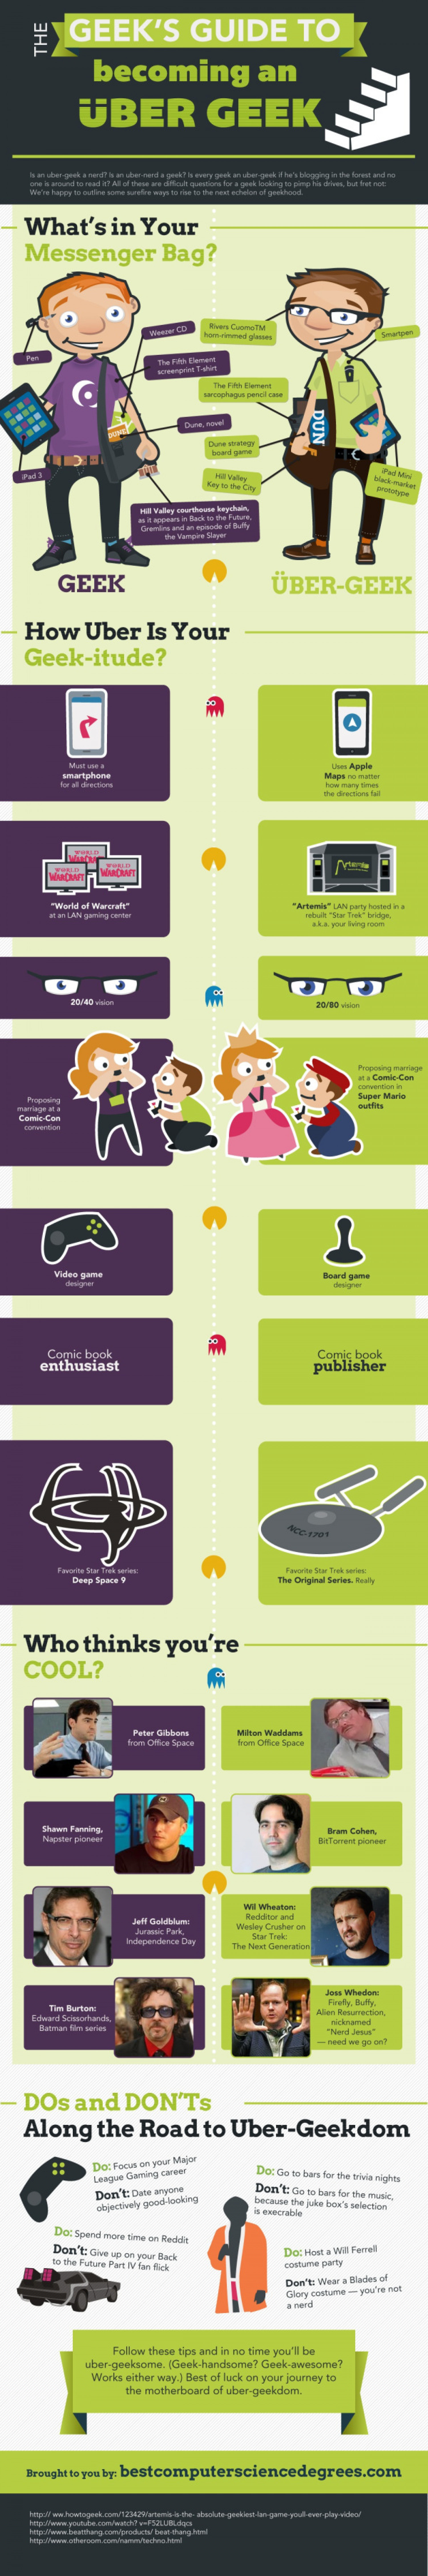 Geek's Guide to Becoming an Über Geek Infographic